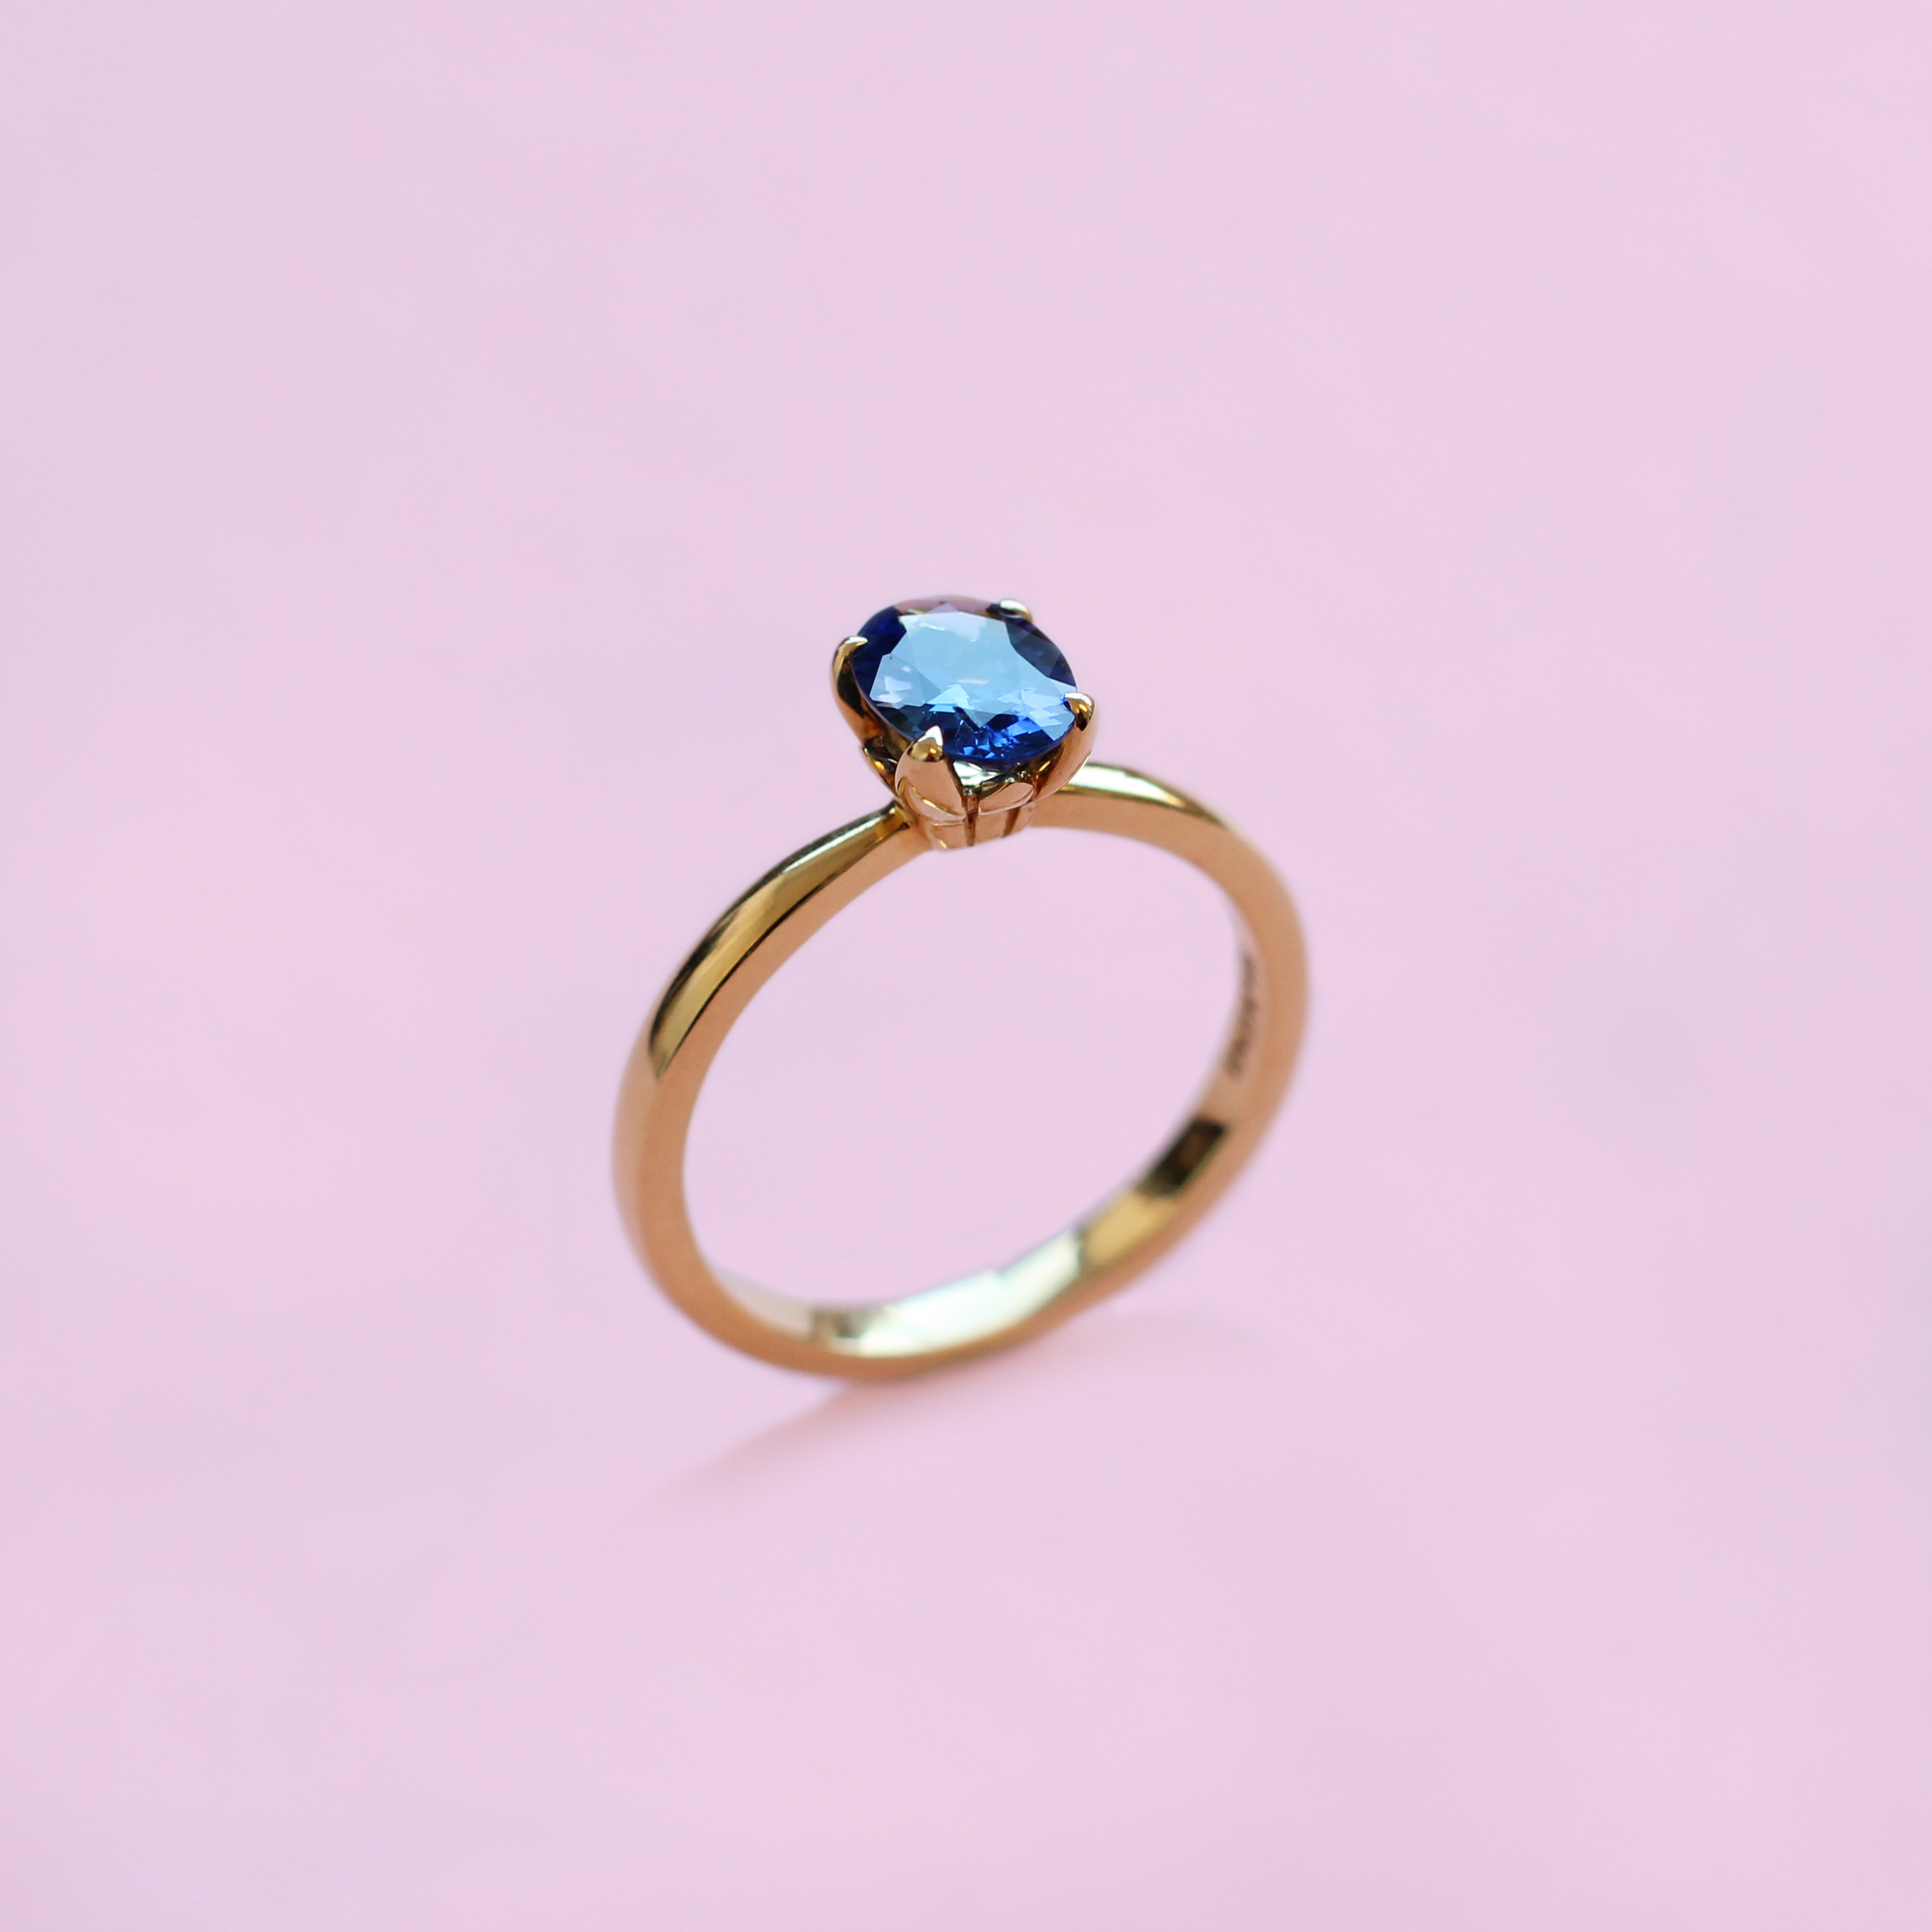 blossom solitaire ring – blue sapphire and 18k yellow gold